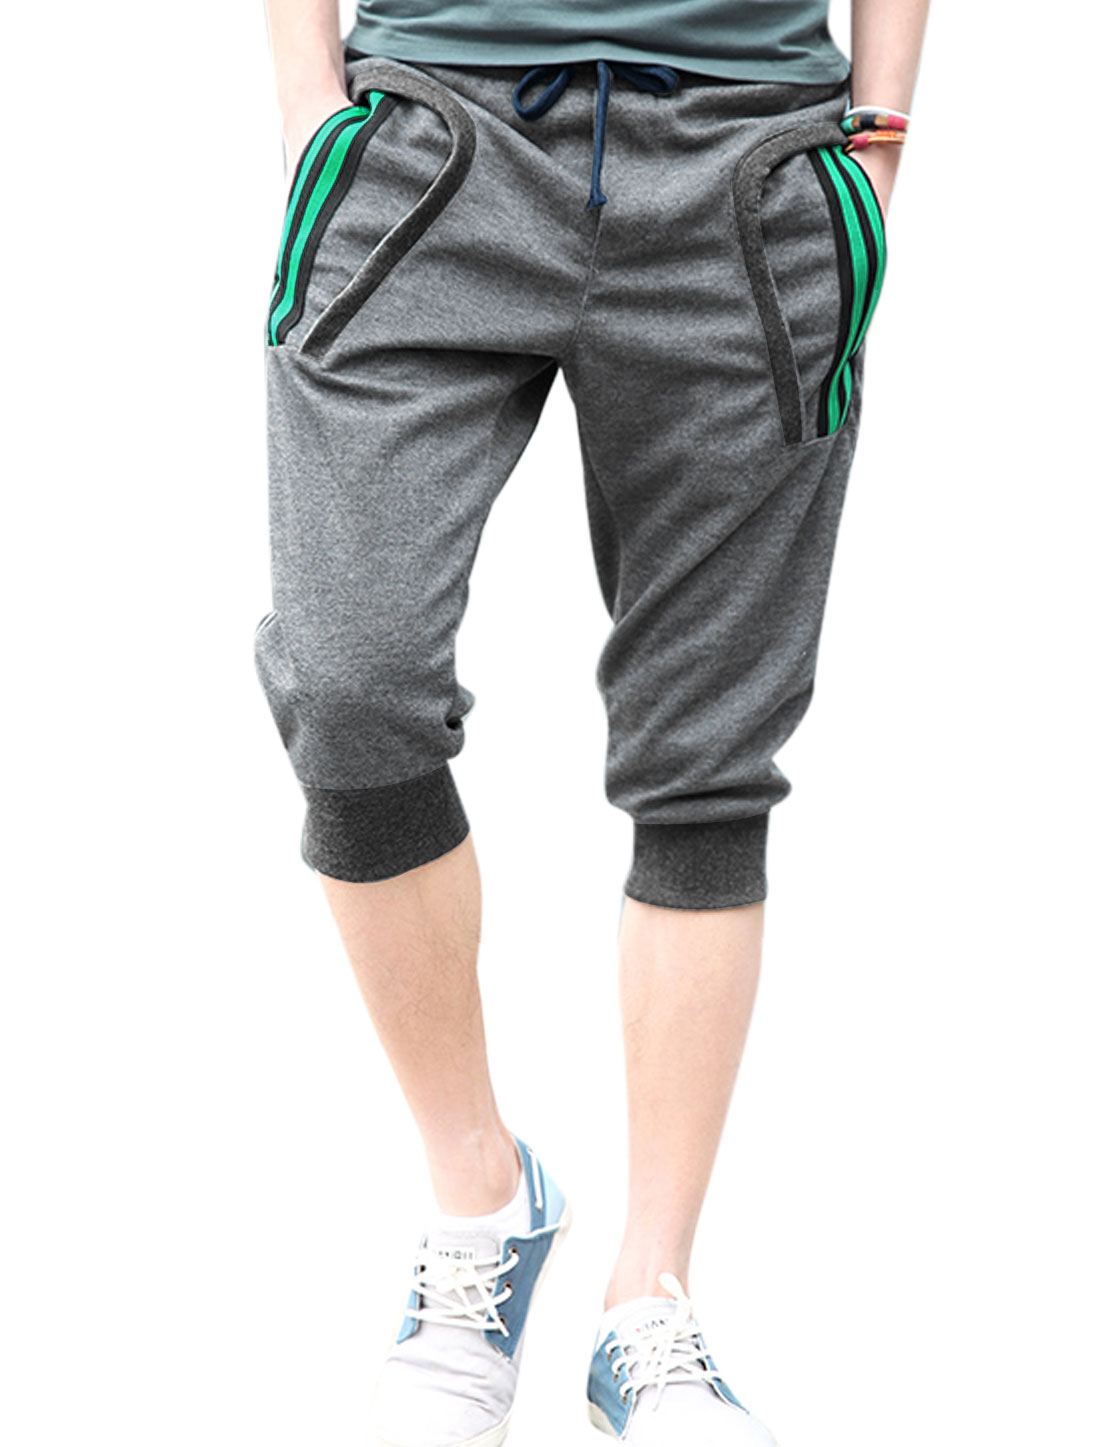 Men Summer Side Zipped Pocket Back Capris Pants Dark Gray W30